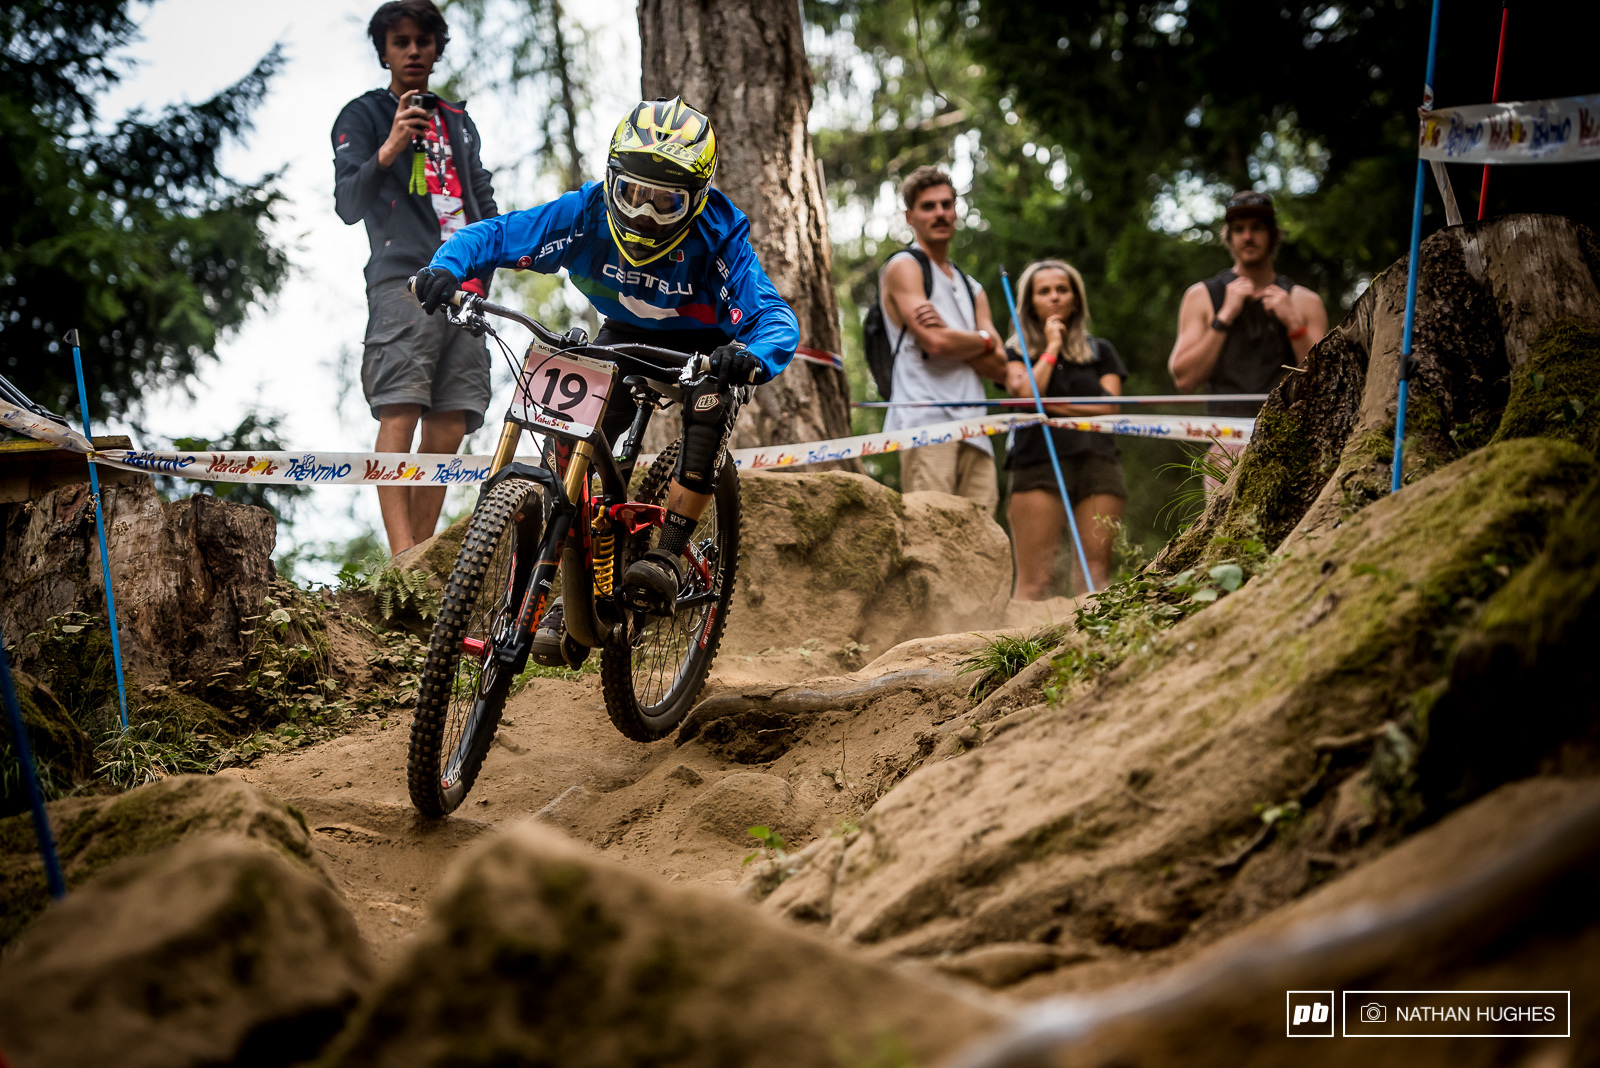 Expect a strong showing from the Italian girls tomorrow... Alia Marcellini is one of the crew set for a top 10 as a minimum on home soil.